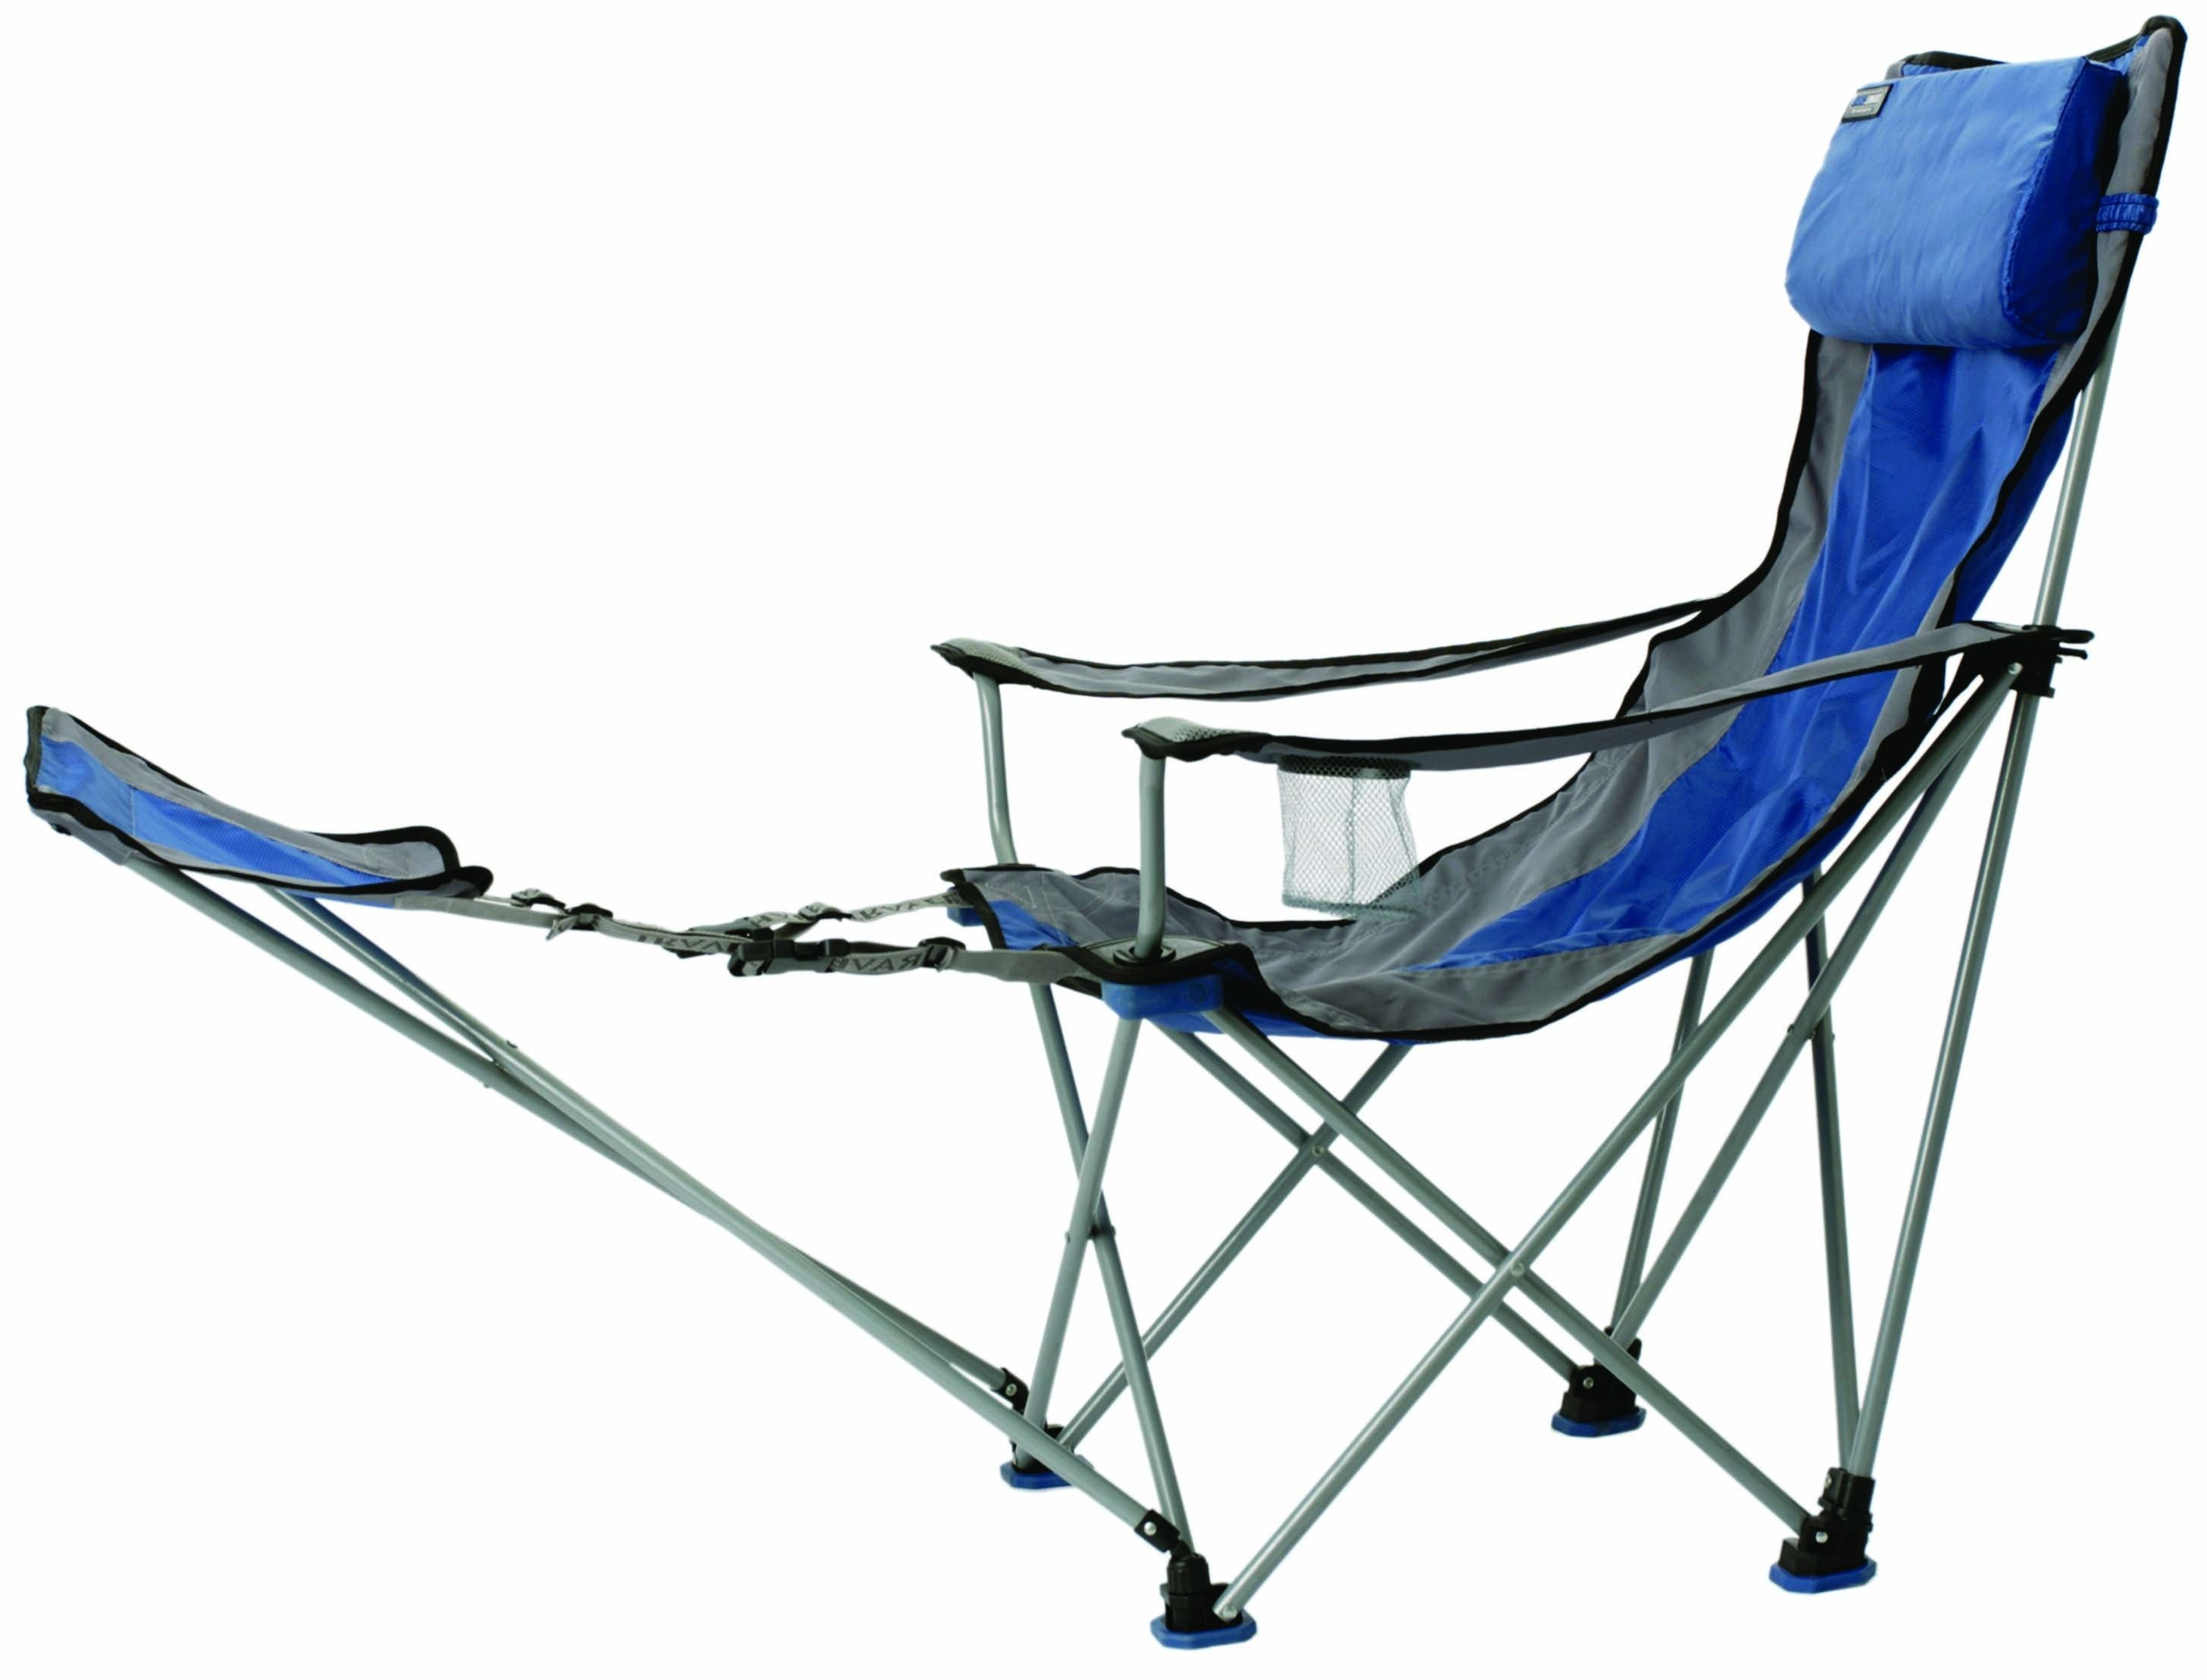 Eddie Bauer Folding Chair With Footrest Folding Chair Camping